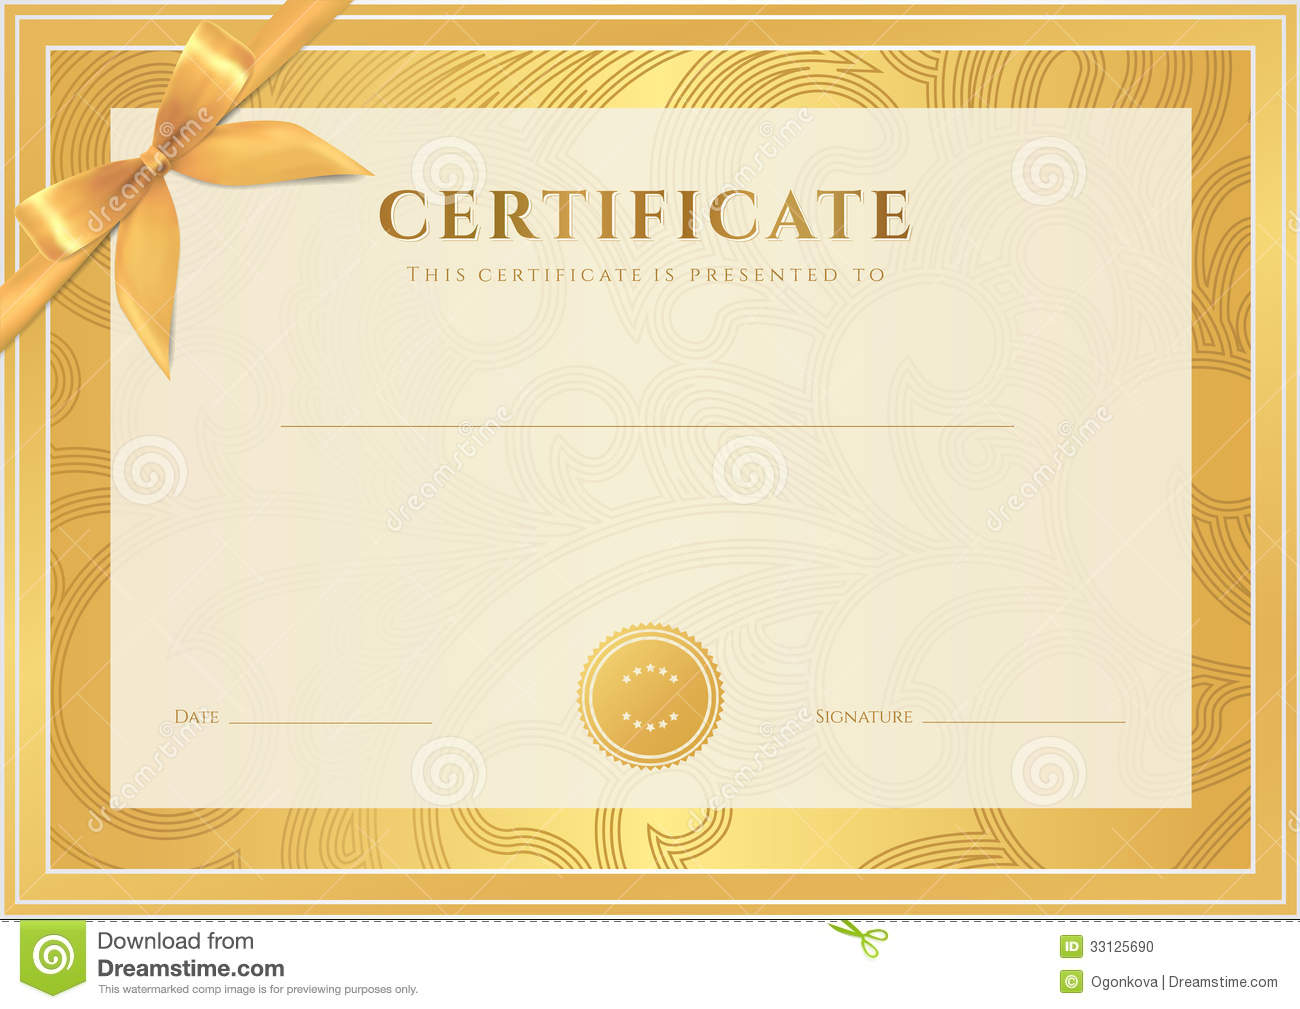 Certificate, Diploma Template. Gold Award Pattern  Certificate Of Completion Template Free Download